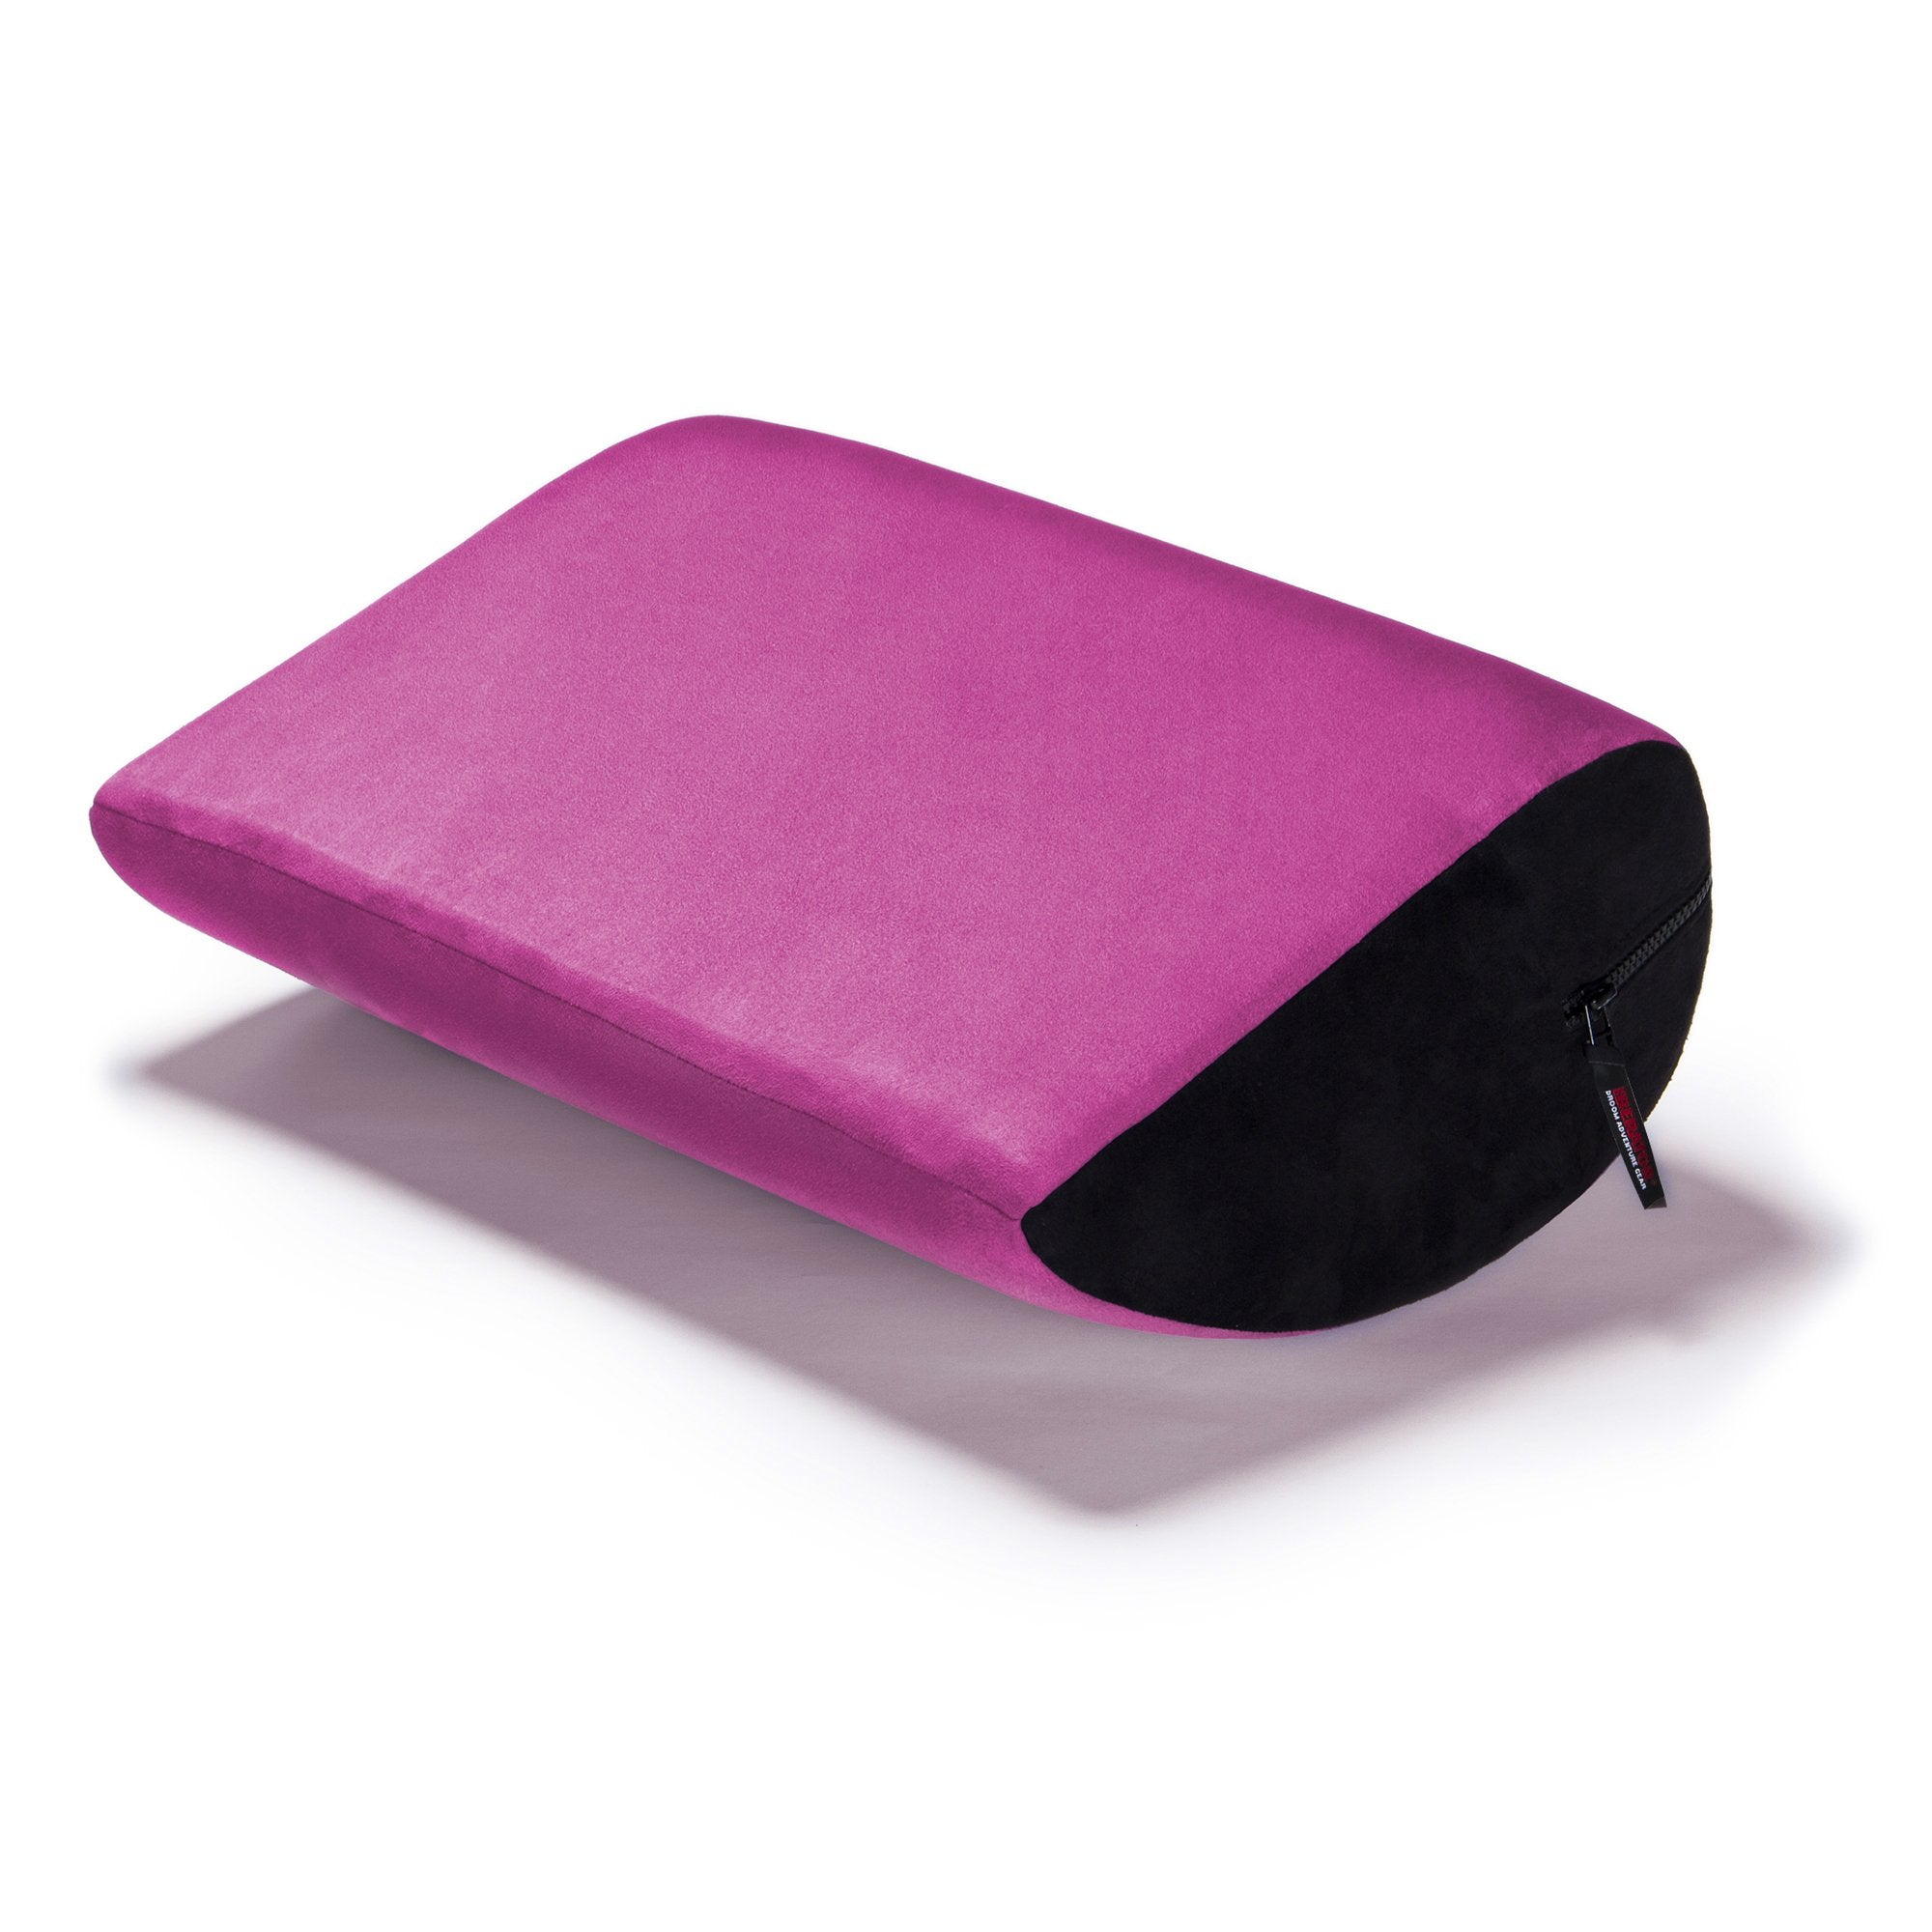 Liberator Jaz Motion Sexual Positioning Cushion - Assorted Colors